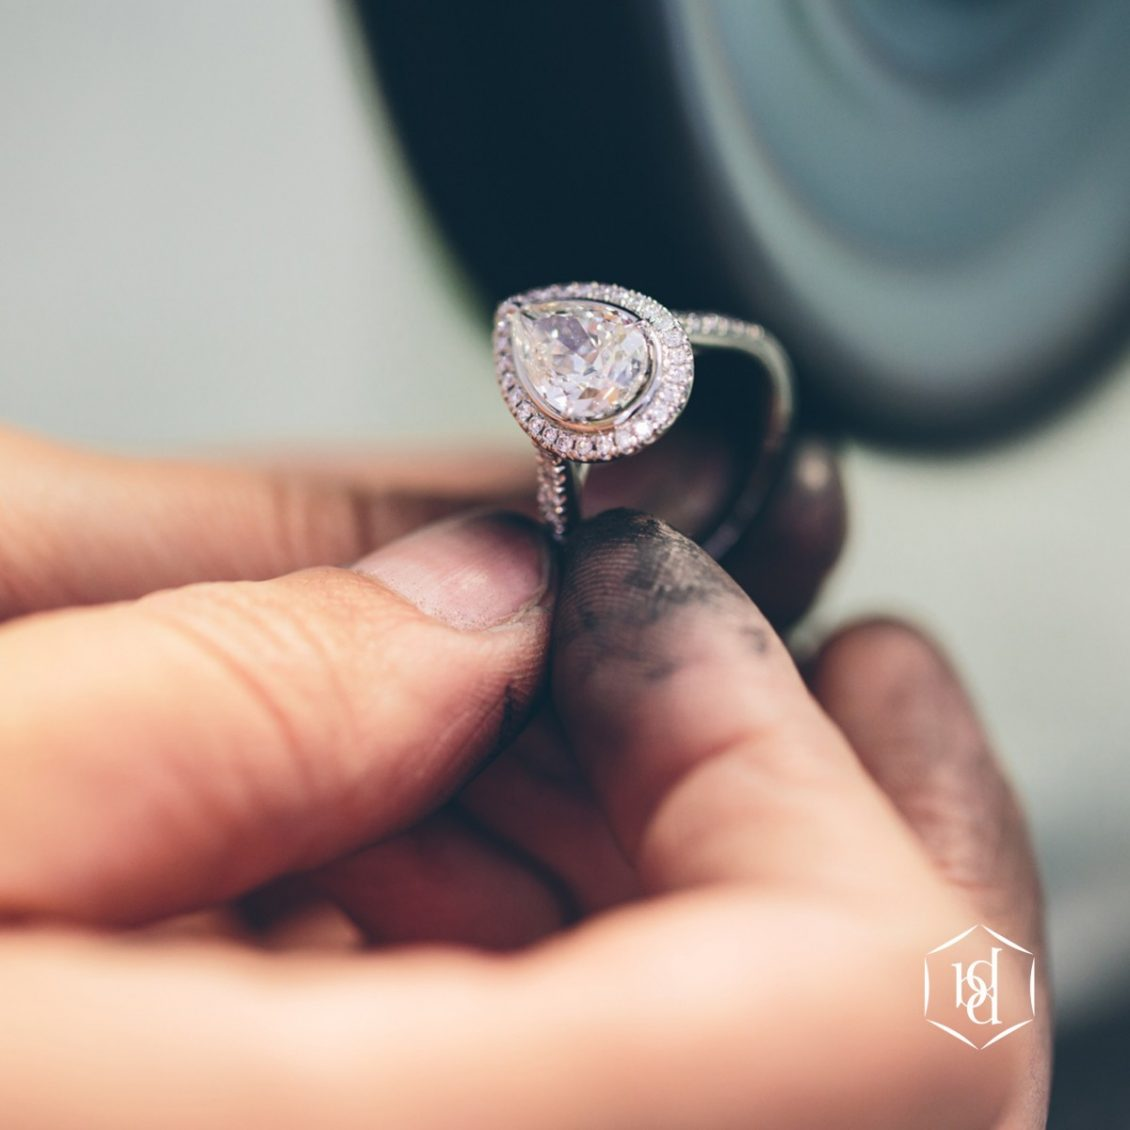 Diamond Pear Cut Ring Being Polished